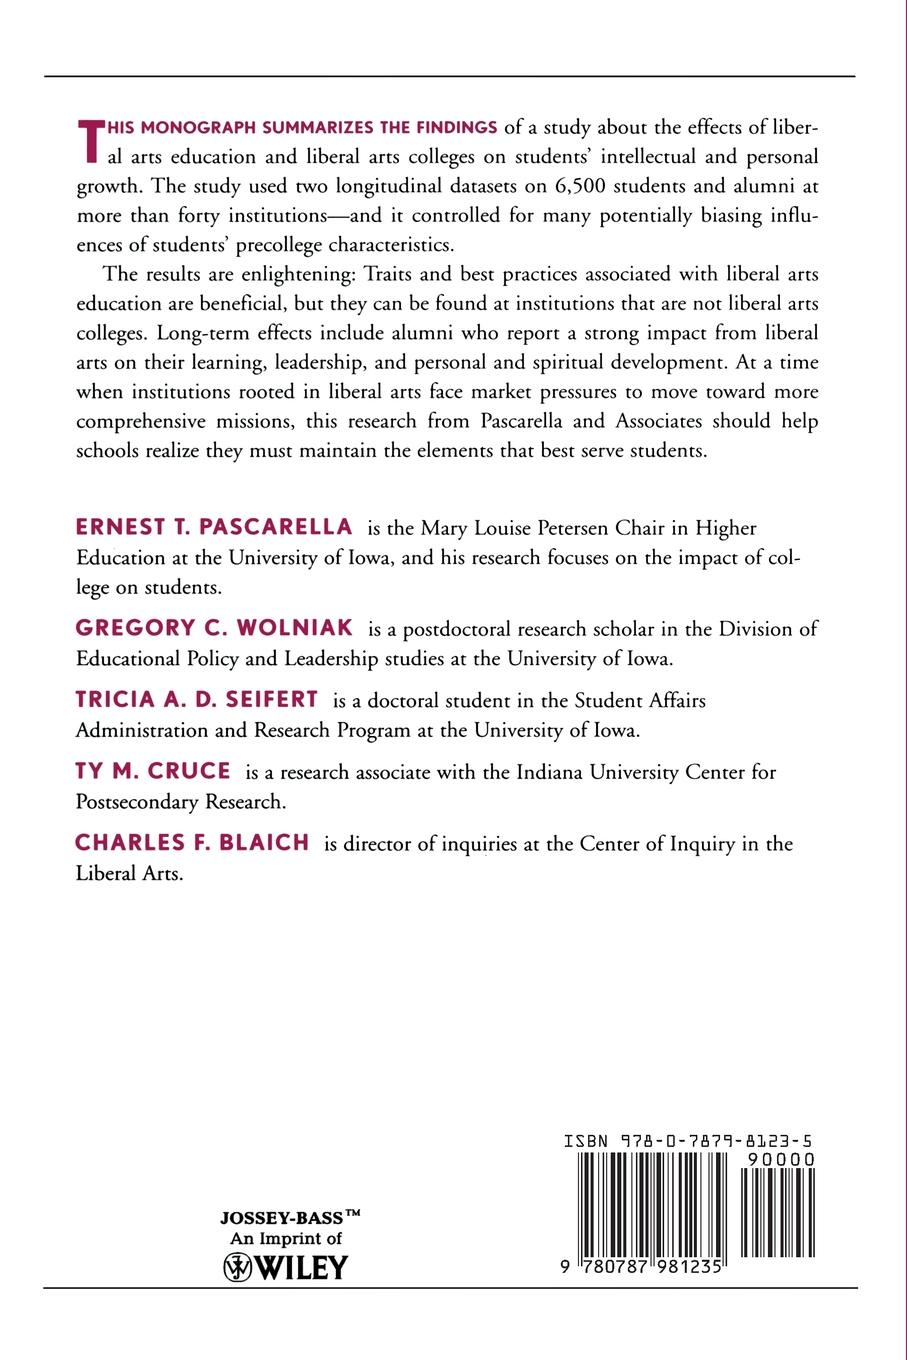 Ernest T. Pascarella, Gregory C. Wolniak, Ty M. Cruce Liberal Arts Colleges and Liberal Arts Education. New Evidence on Impacts, Number 3 фата jewelry arts and liberal arts 0661